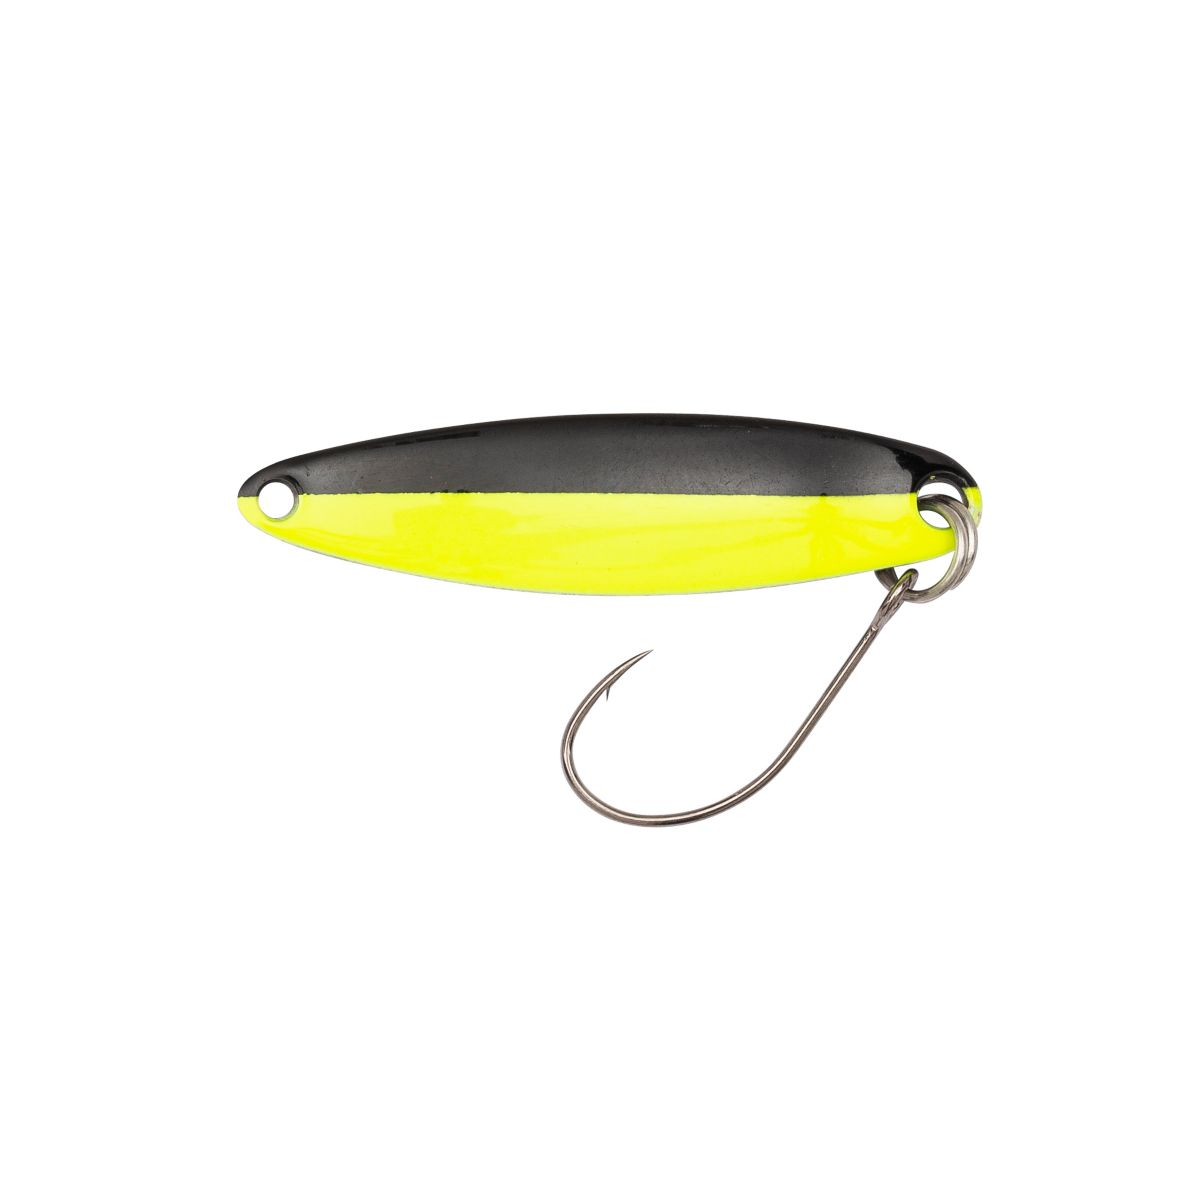 AGS SUKOSHI 3,5G CHARTREUSE BLACK